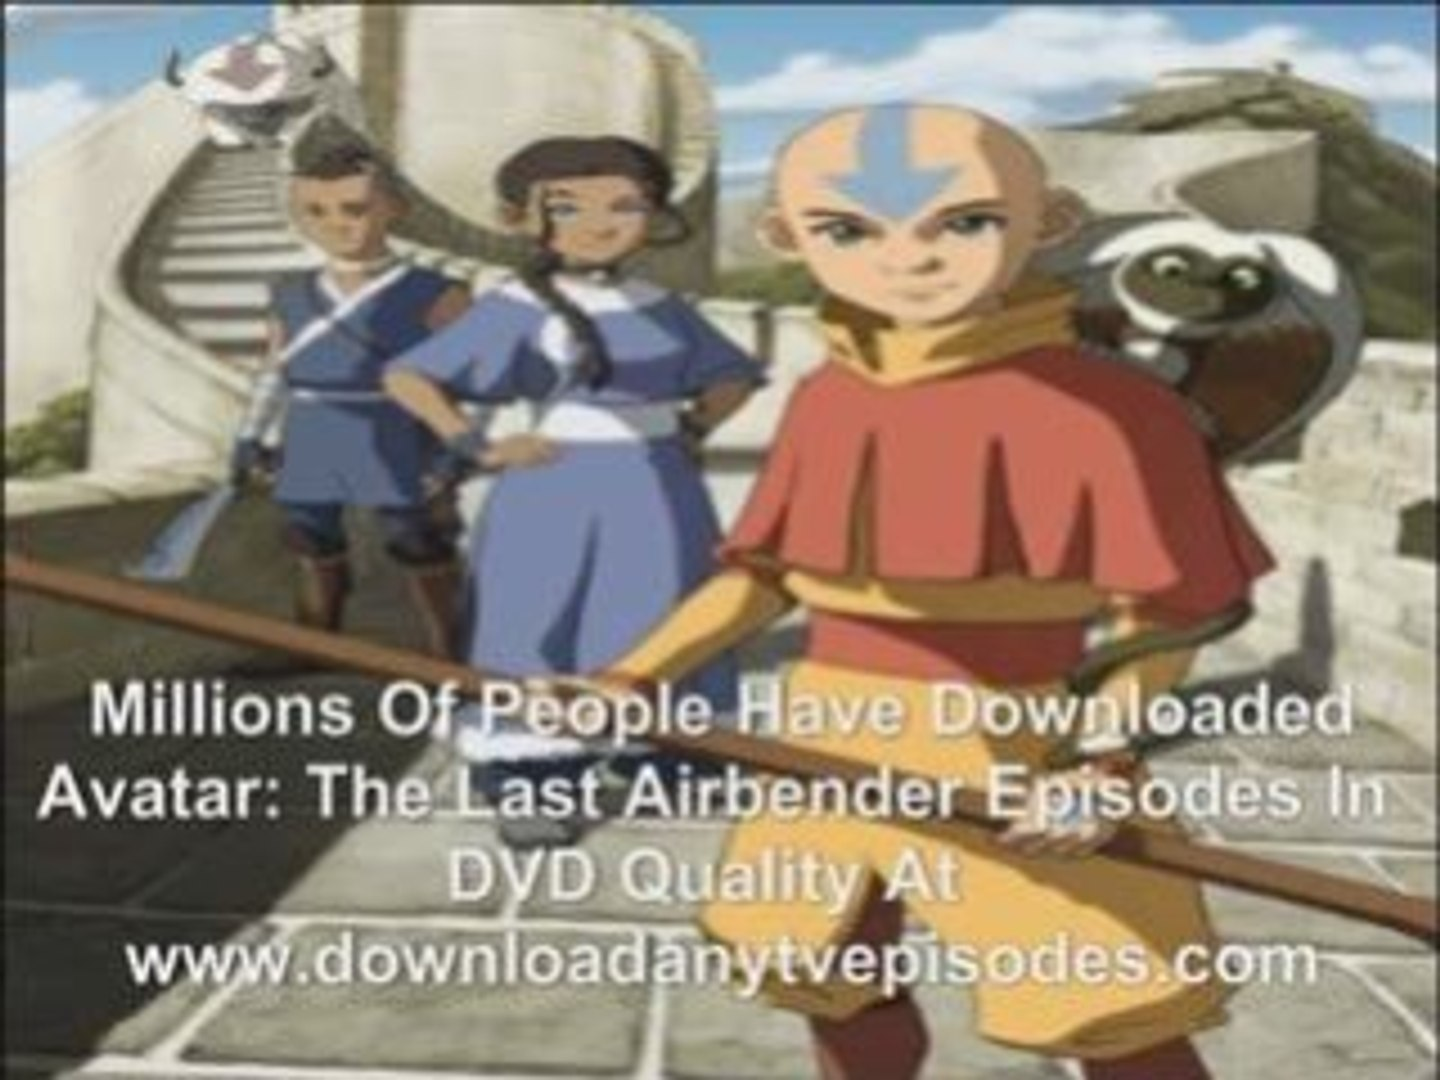 download avatar the last airbender episodes free